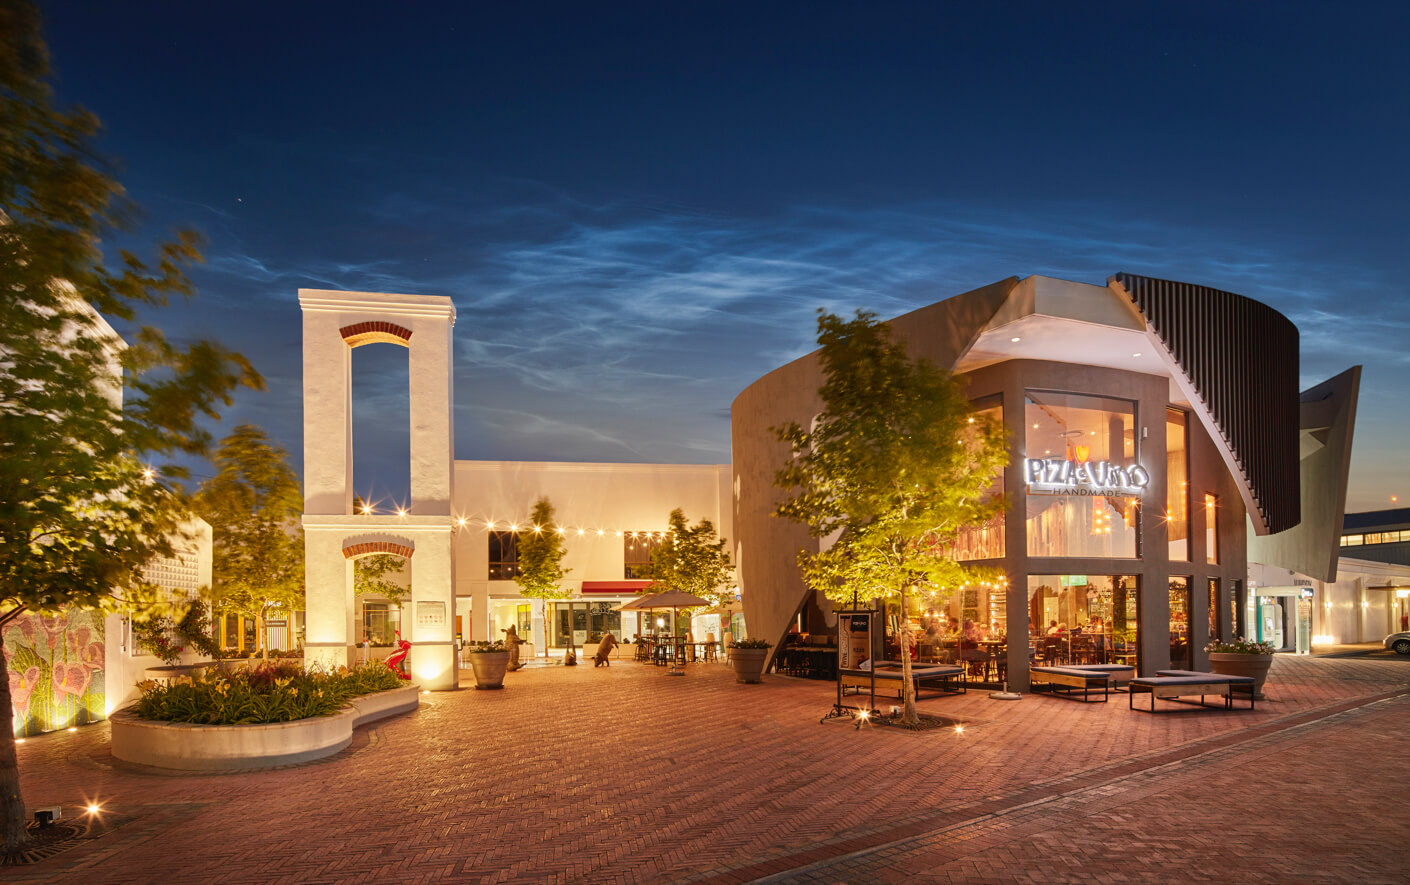 Stellenbosch Square courtyard and Piza e Vino at night